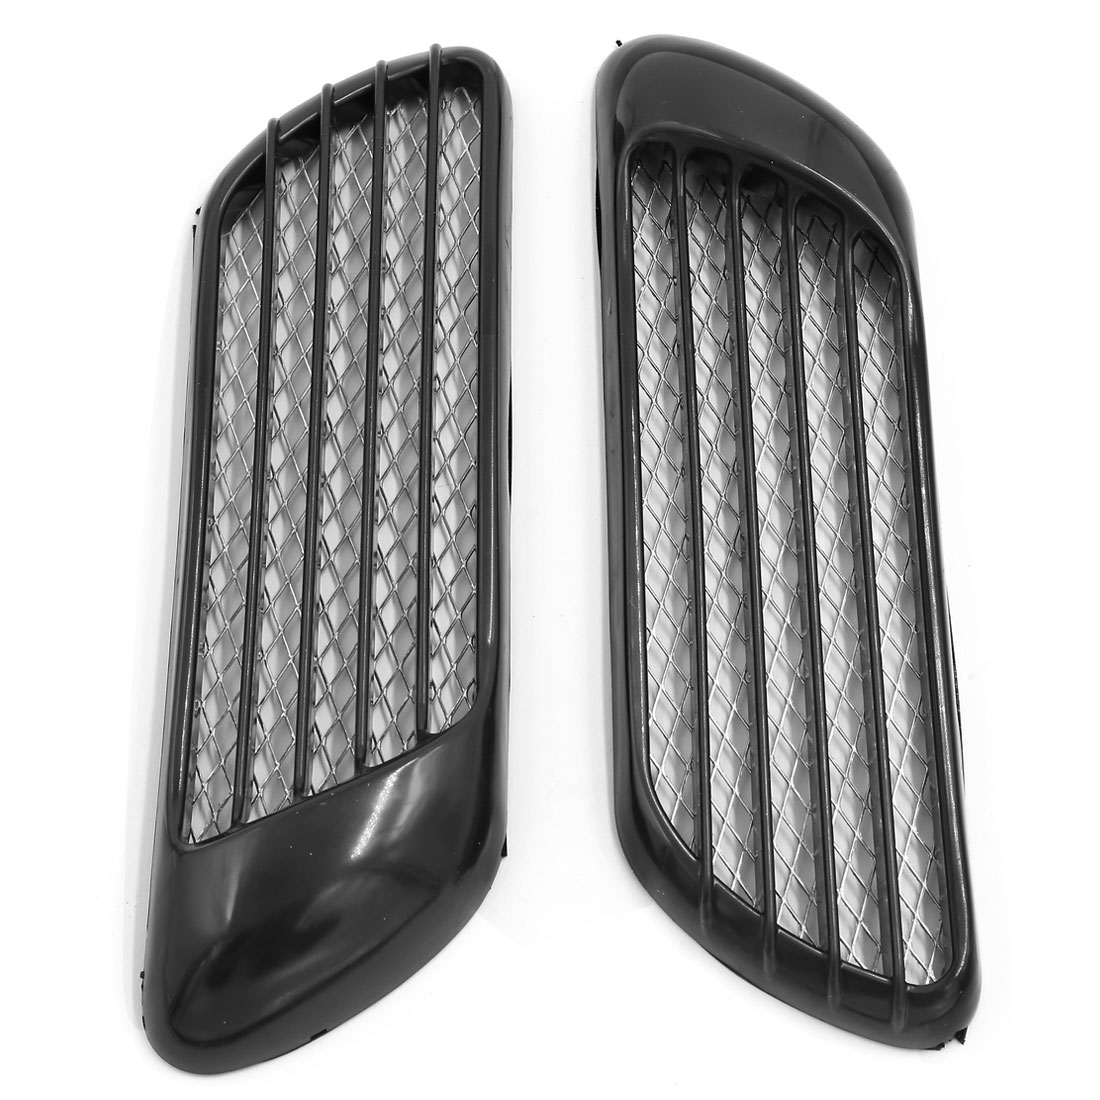 Universal Car Auto Air Flow Intake Grille Fender Side Vents Decorative Sticker 2 Pcs